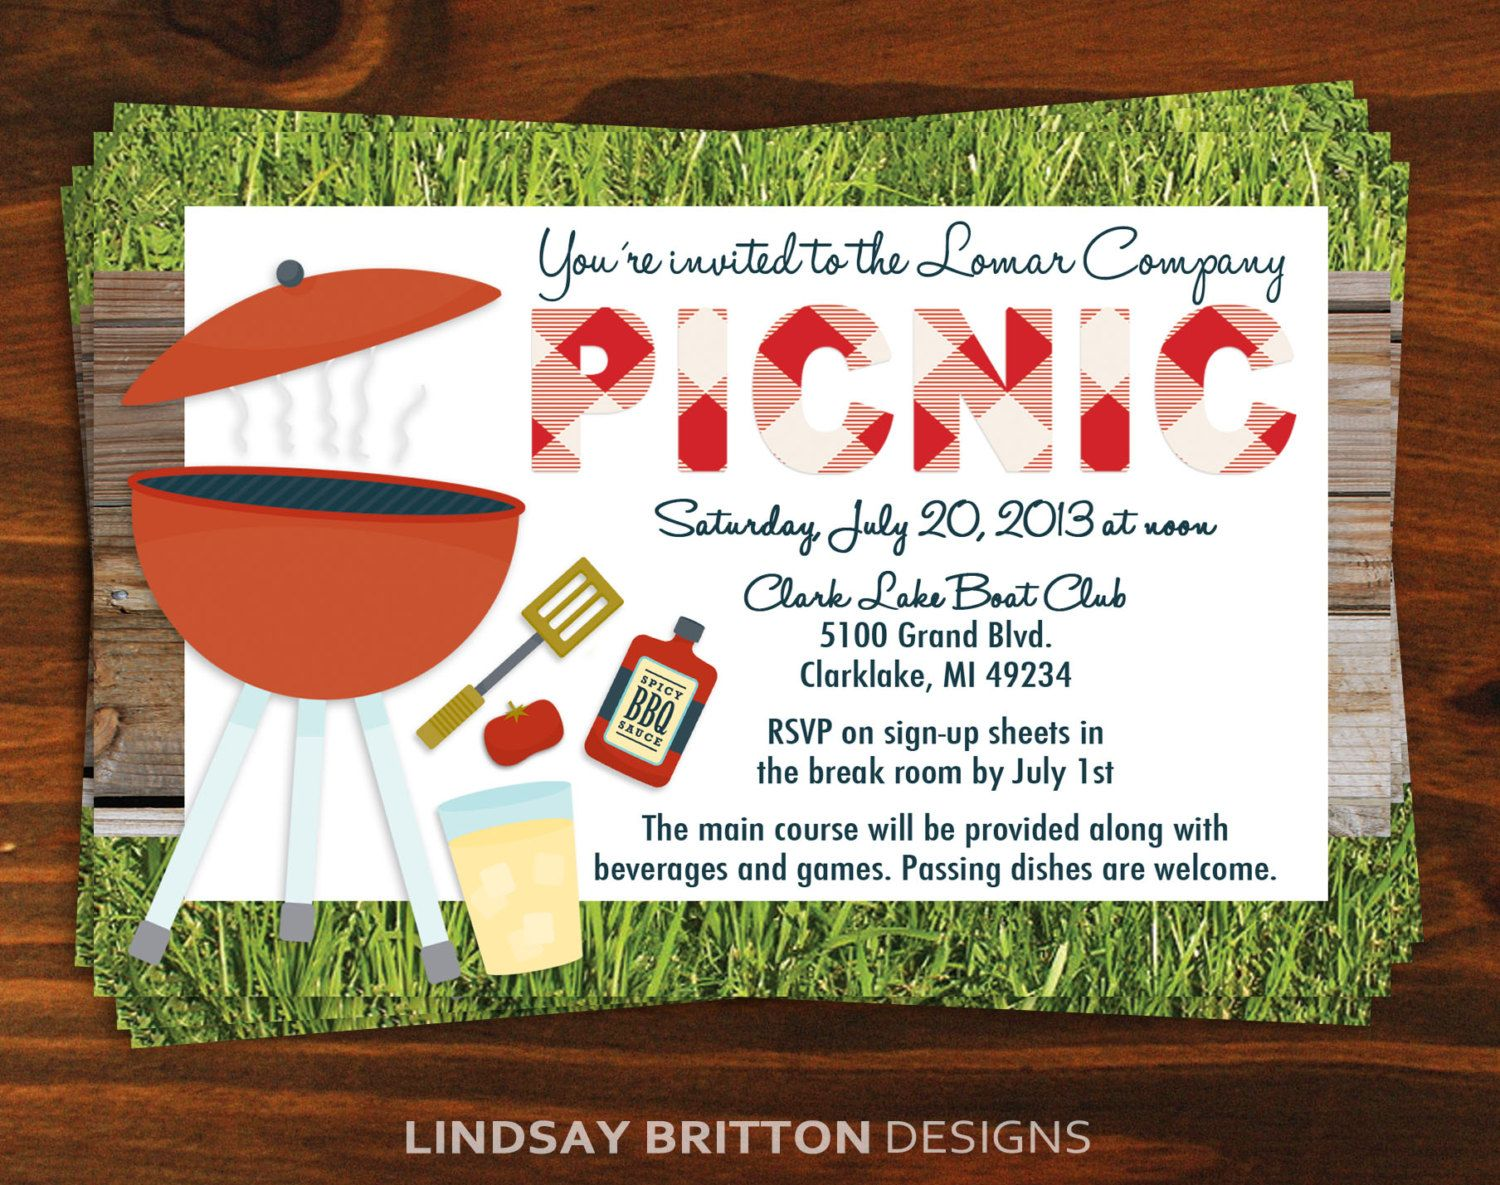 Lovely Family Or Company Picnic Invitation By Lindsaybrittondesign  Company Party Invitation Templates